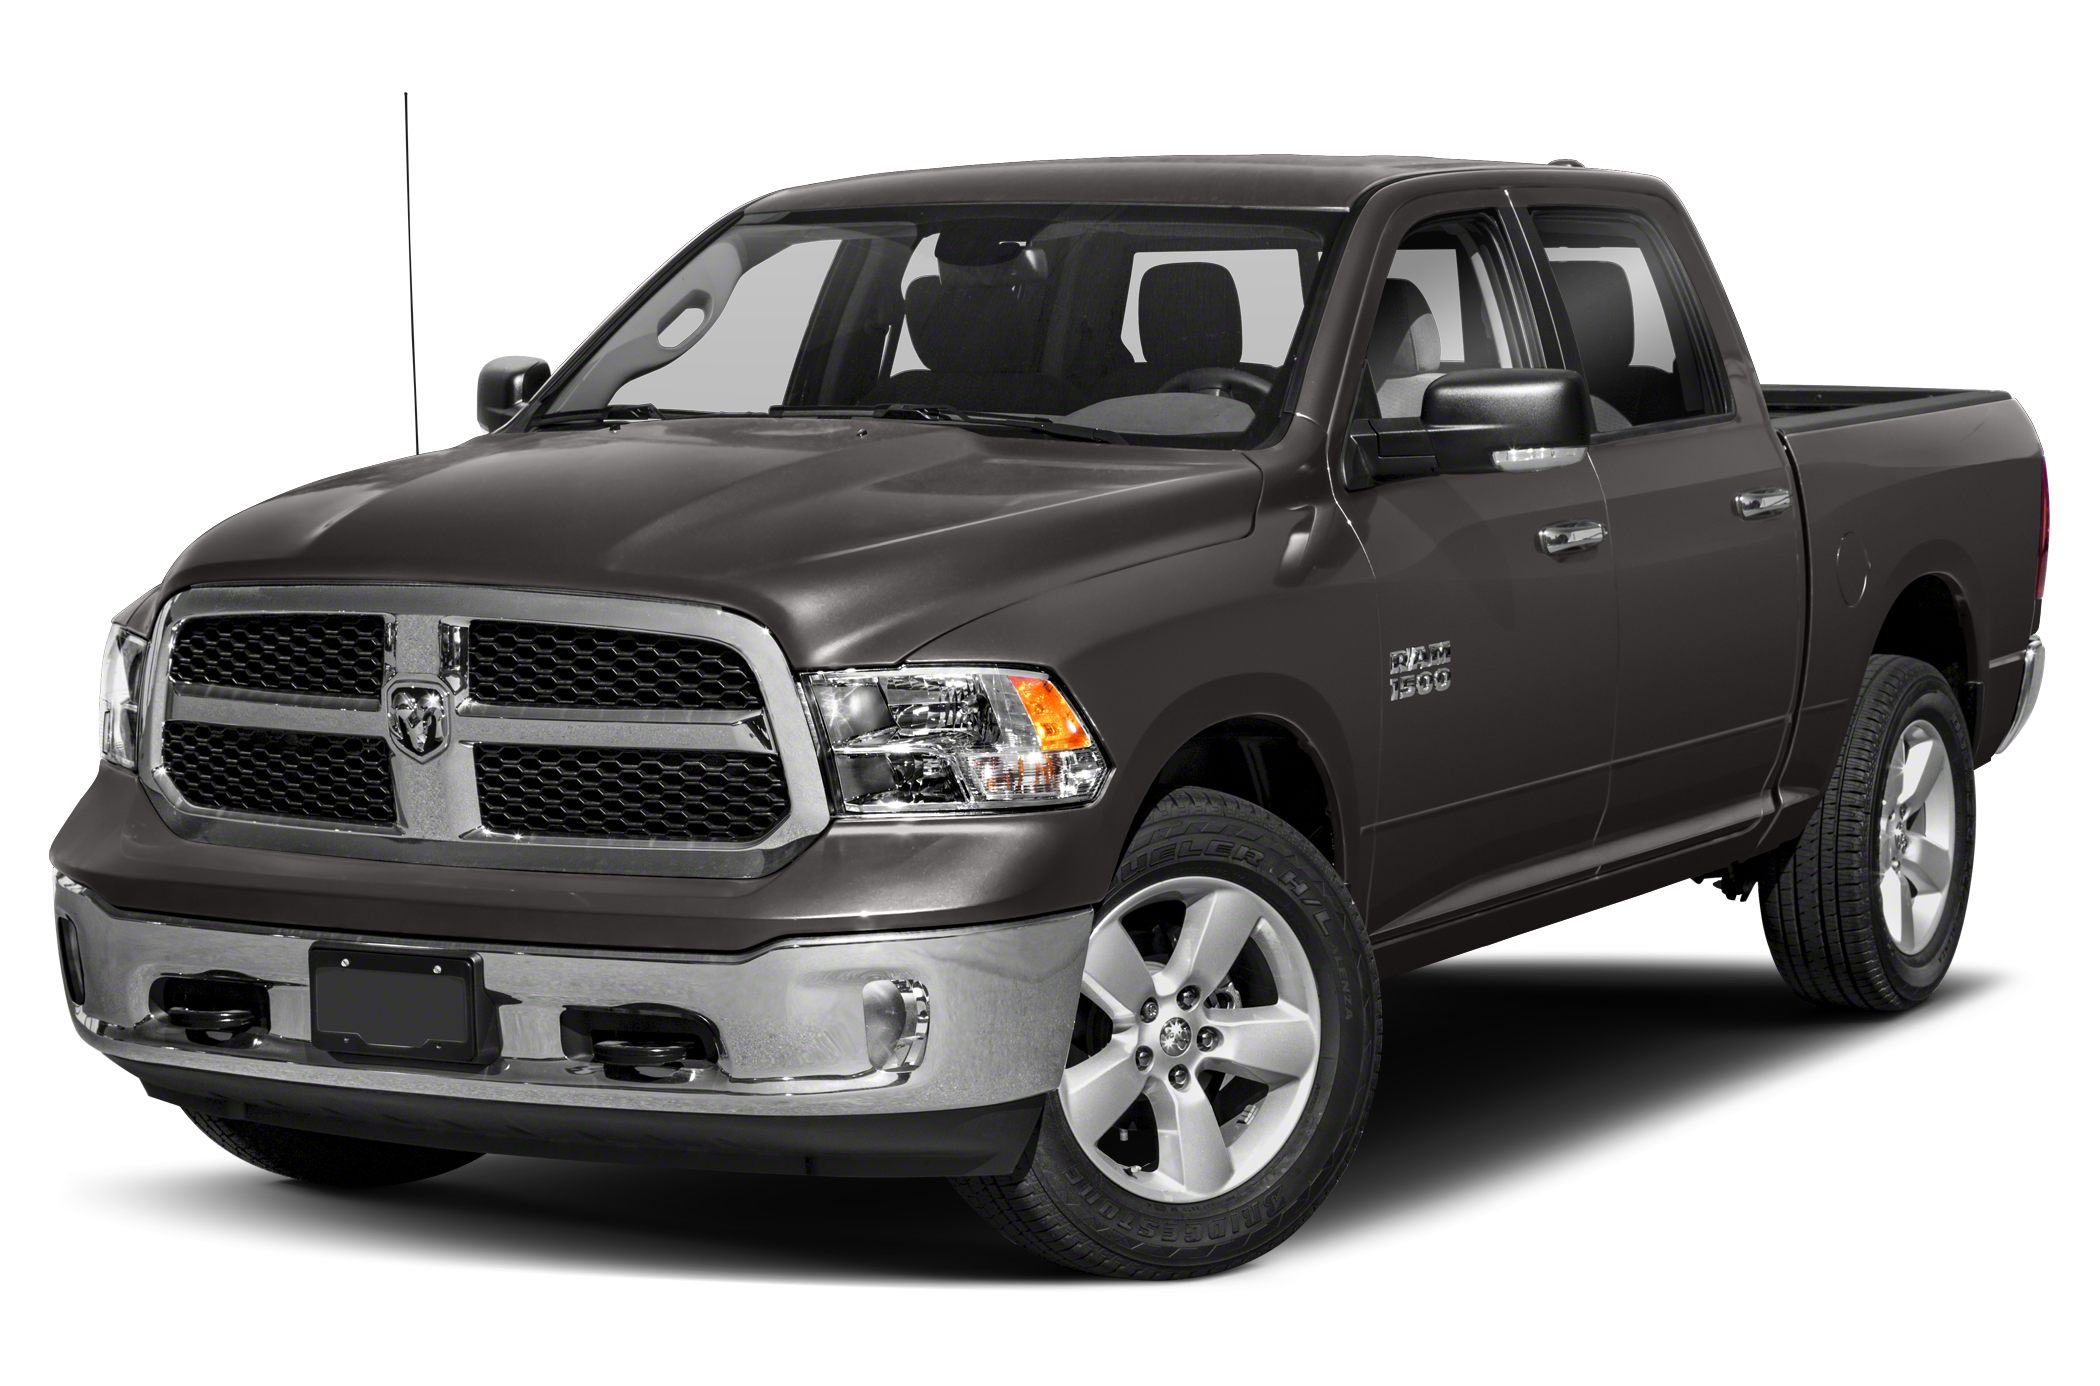 2017 Dodge Ram >> 2017 Ram 1500 Slt 4x4 Crew Cab 149 In Wb Pictures